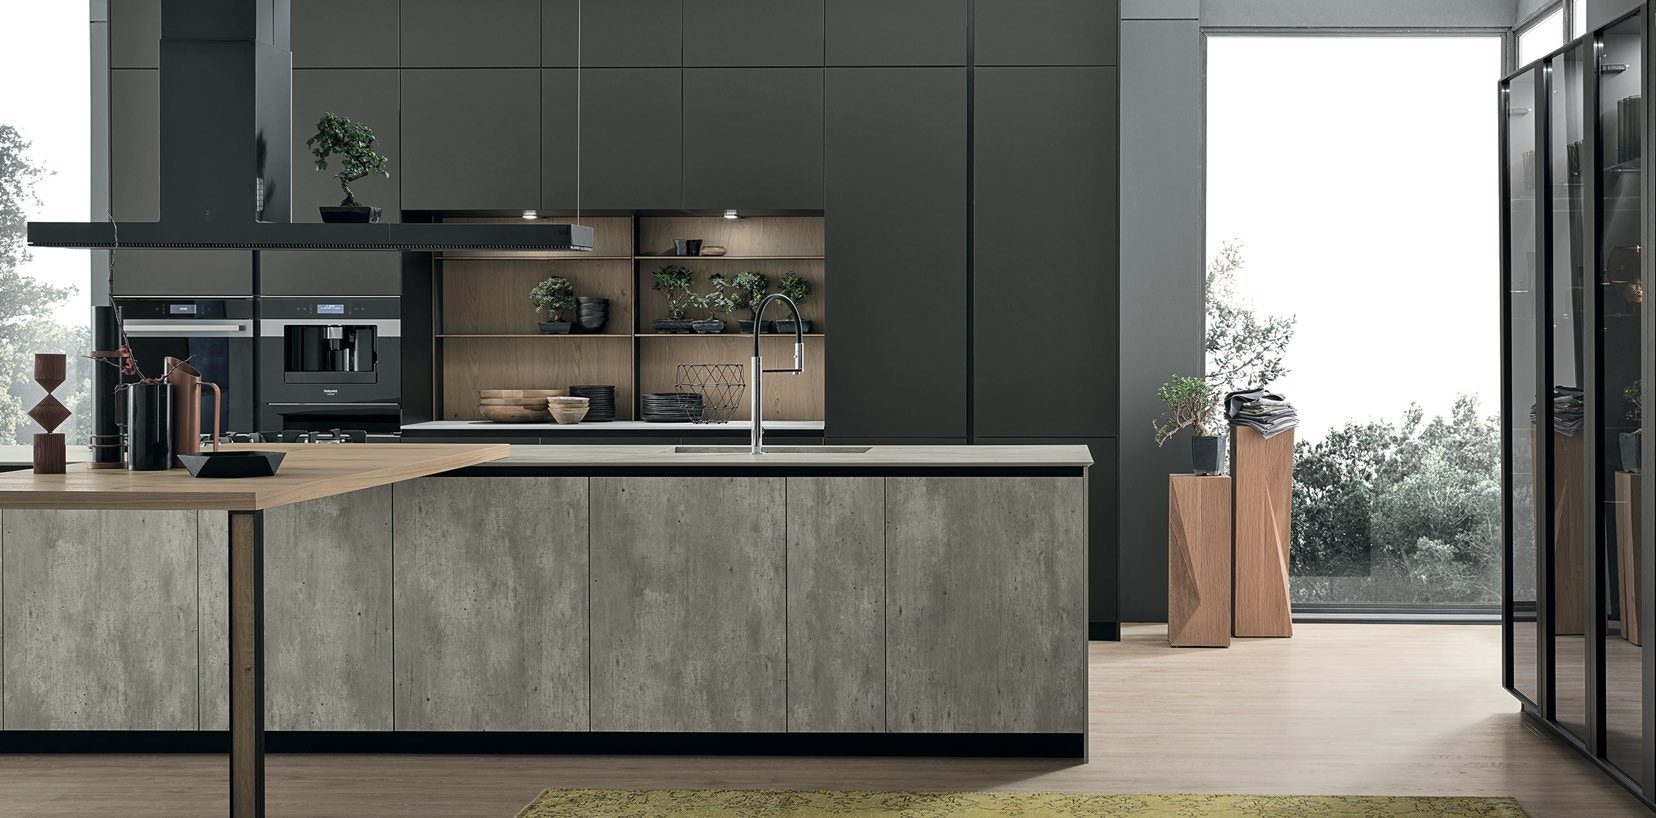 Stosa Cucine | Modern and classic kitchens for over 50 years